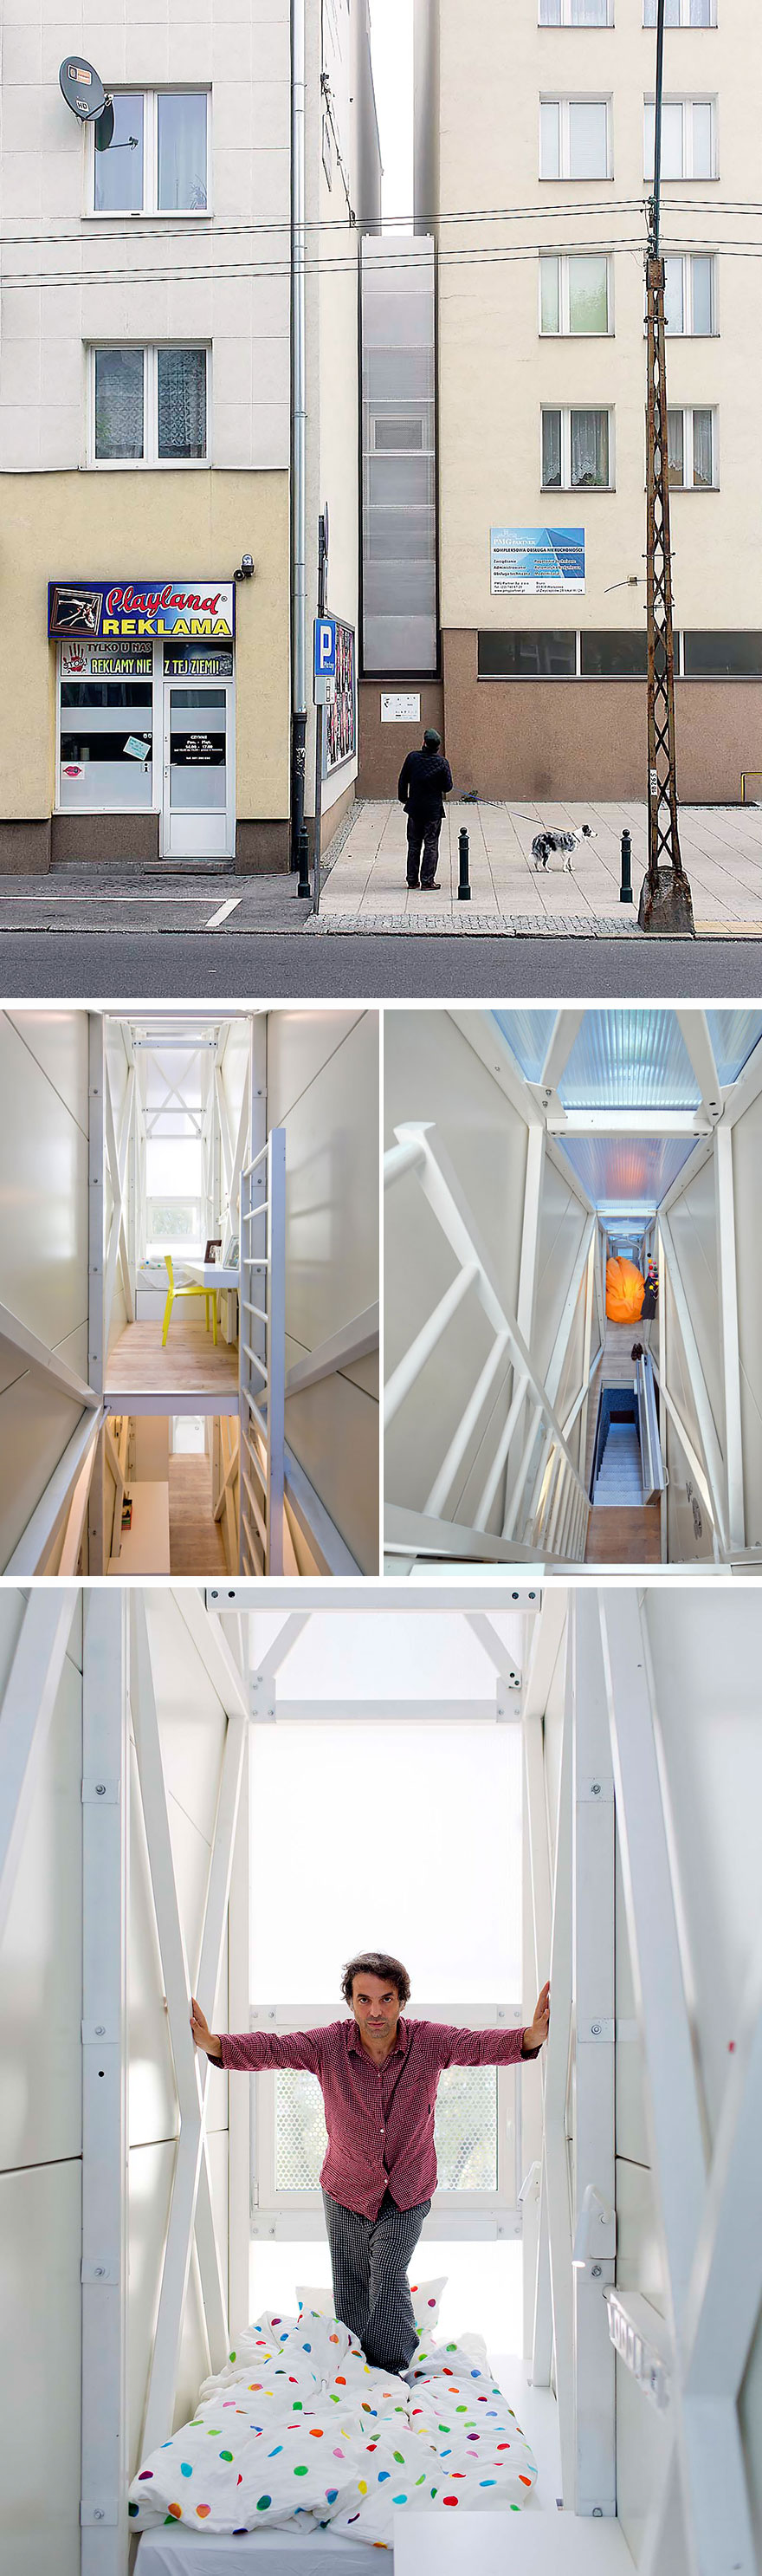 AD-Small-Houses-Saving-Space-13